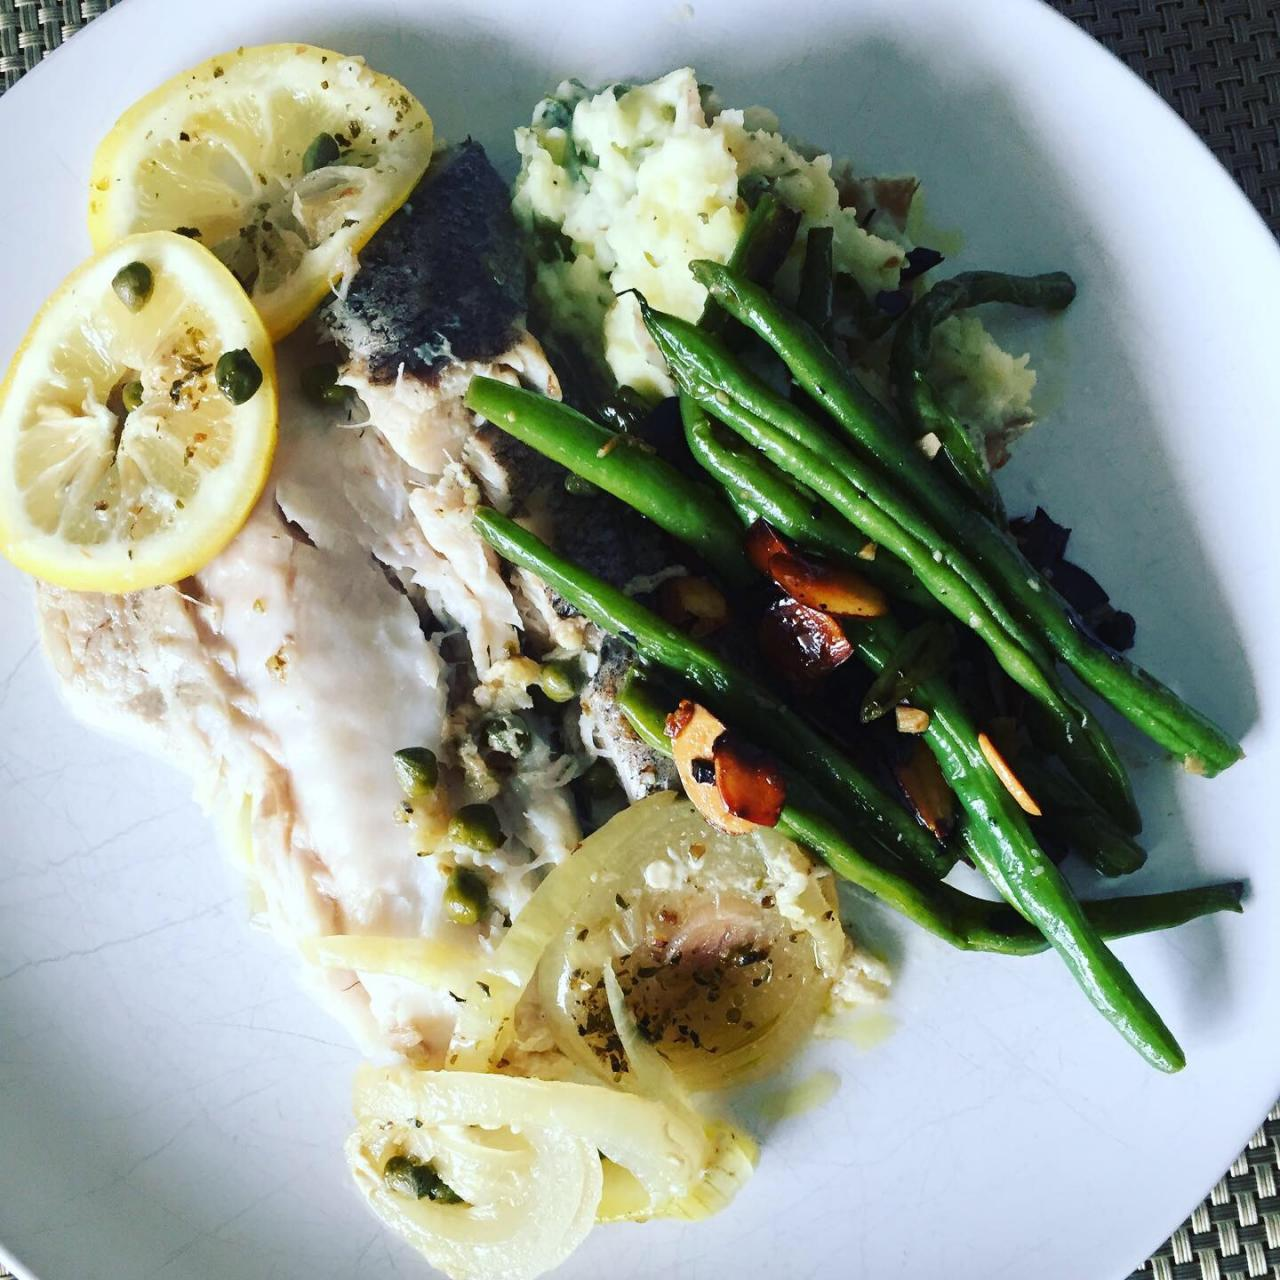 Hake n' Bake: Oven Roasted Hake with Lemon, Garlic and Capers